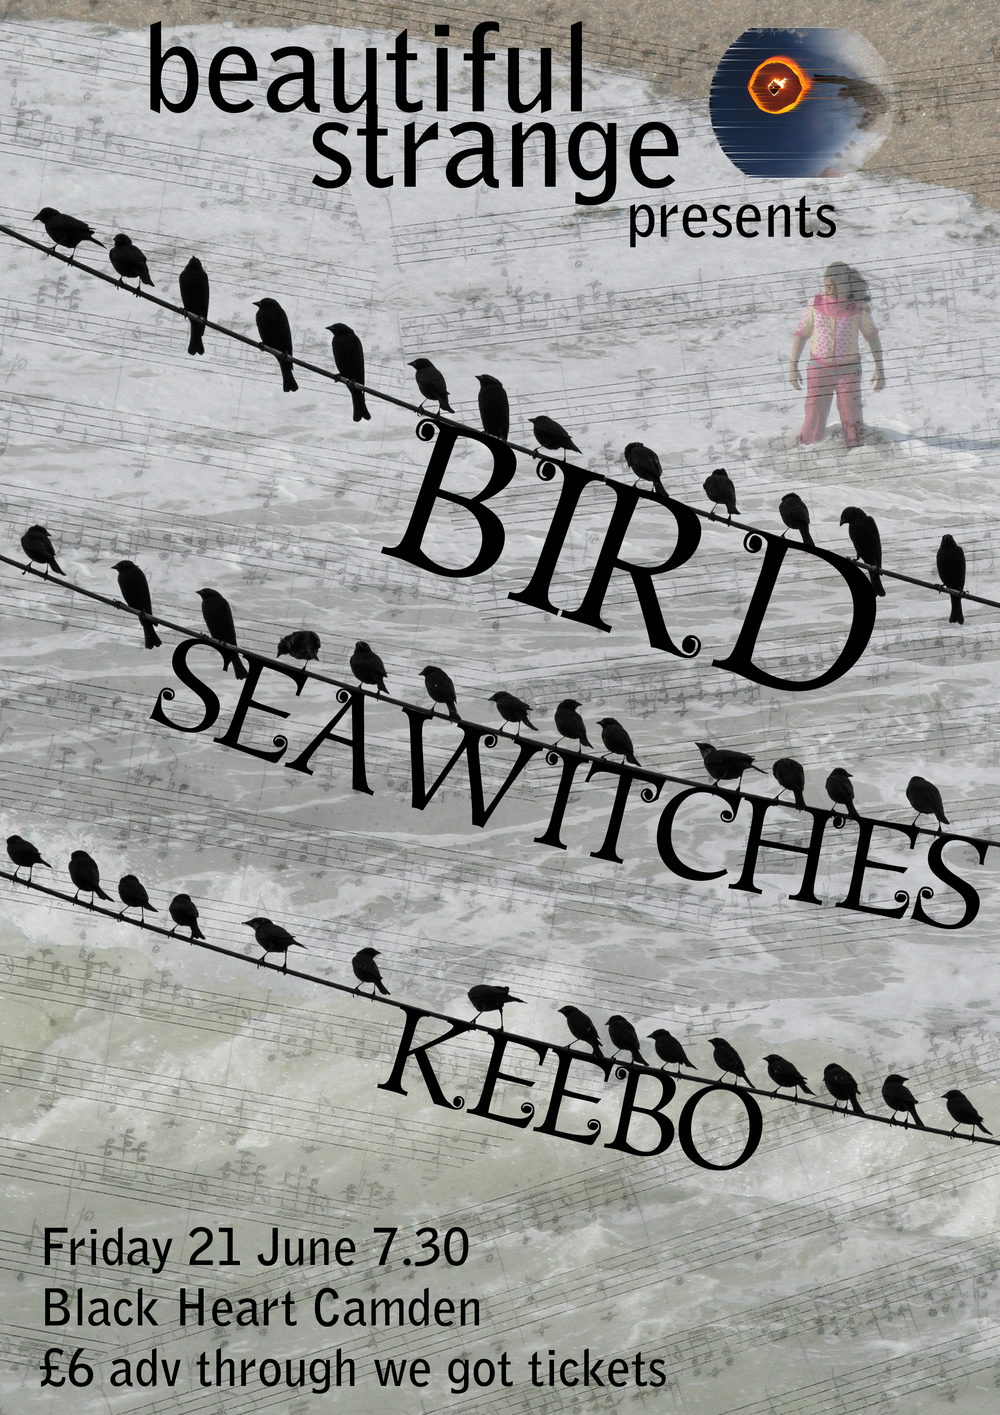 poster draft bird 2.jpg